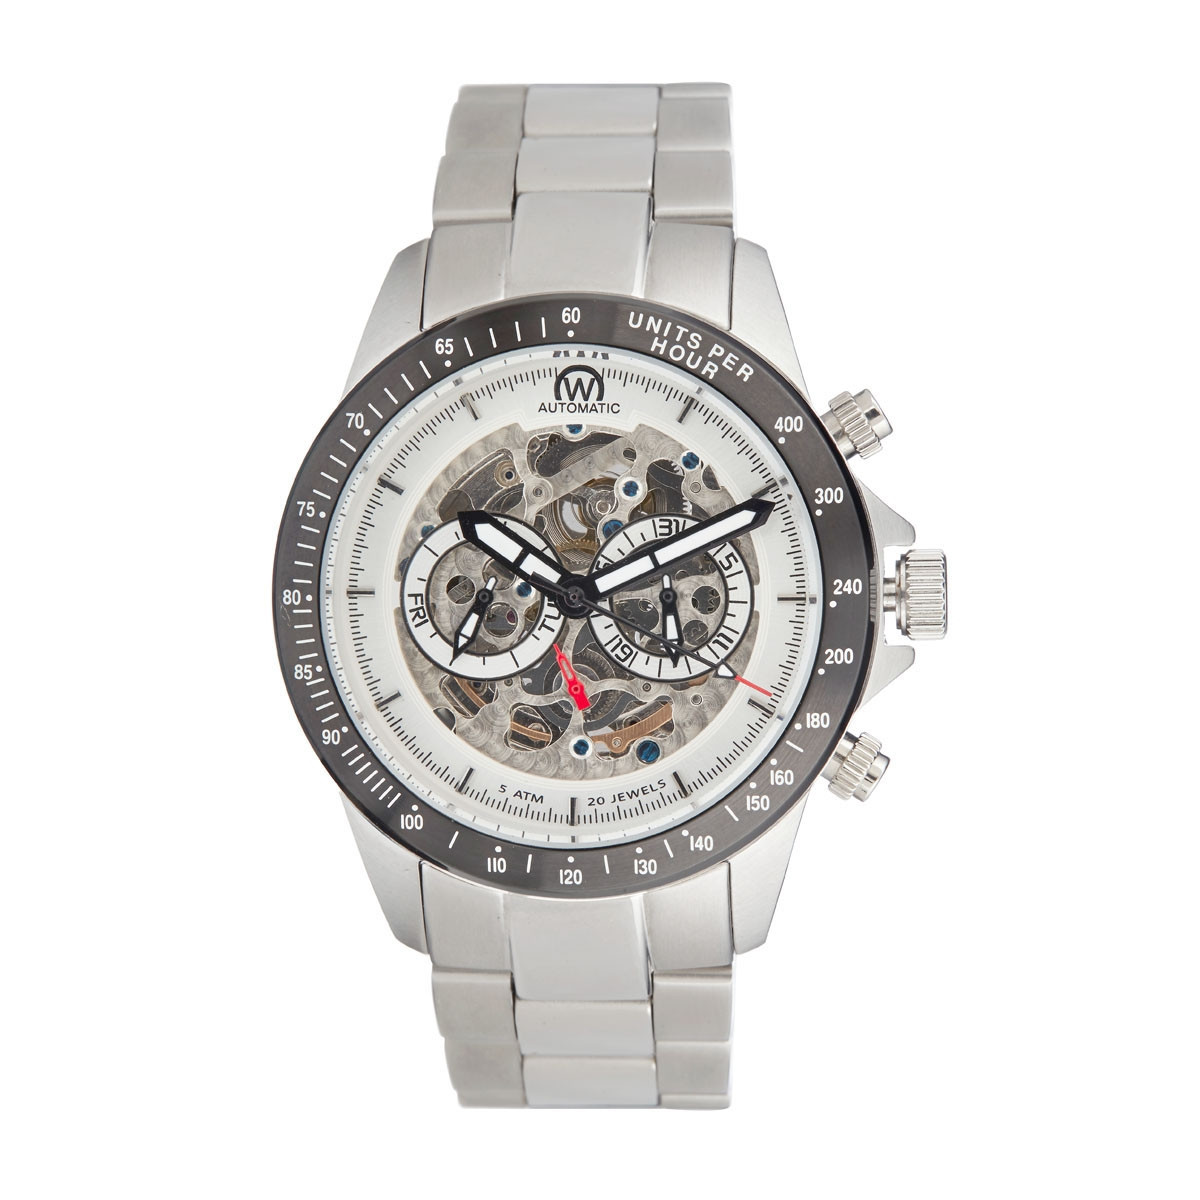 "Montre Chronowatch ""Weapon"" Automatique Blanc Bracelet Métal - HB5150C2BM1"